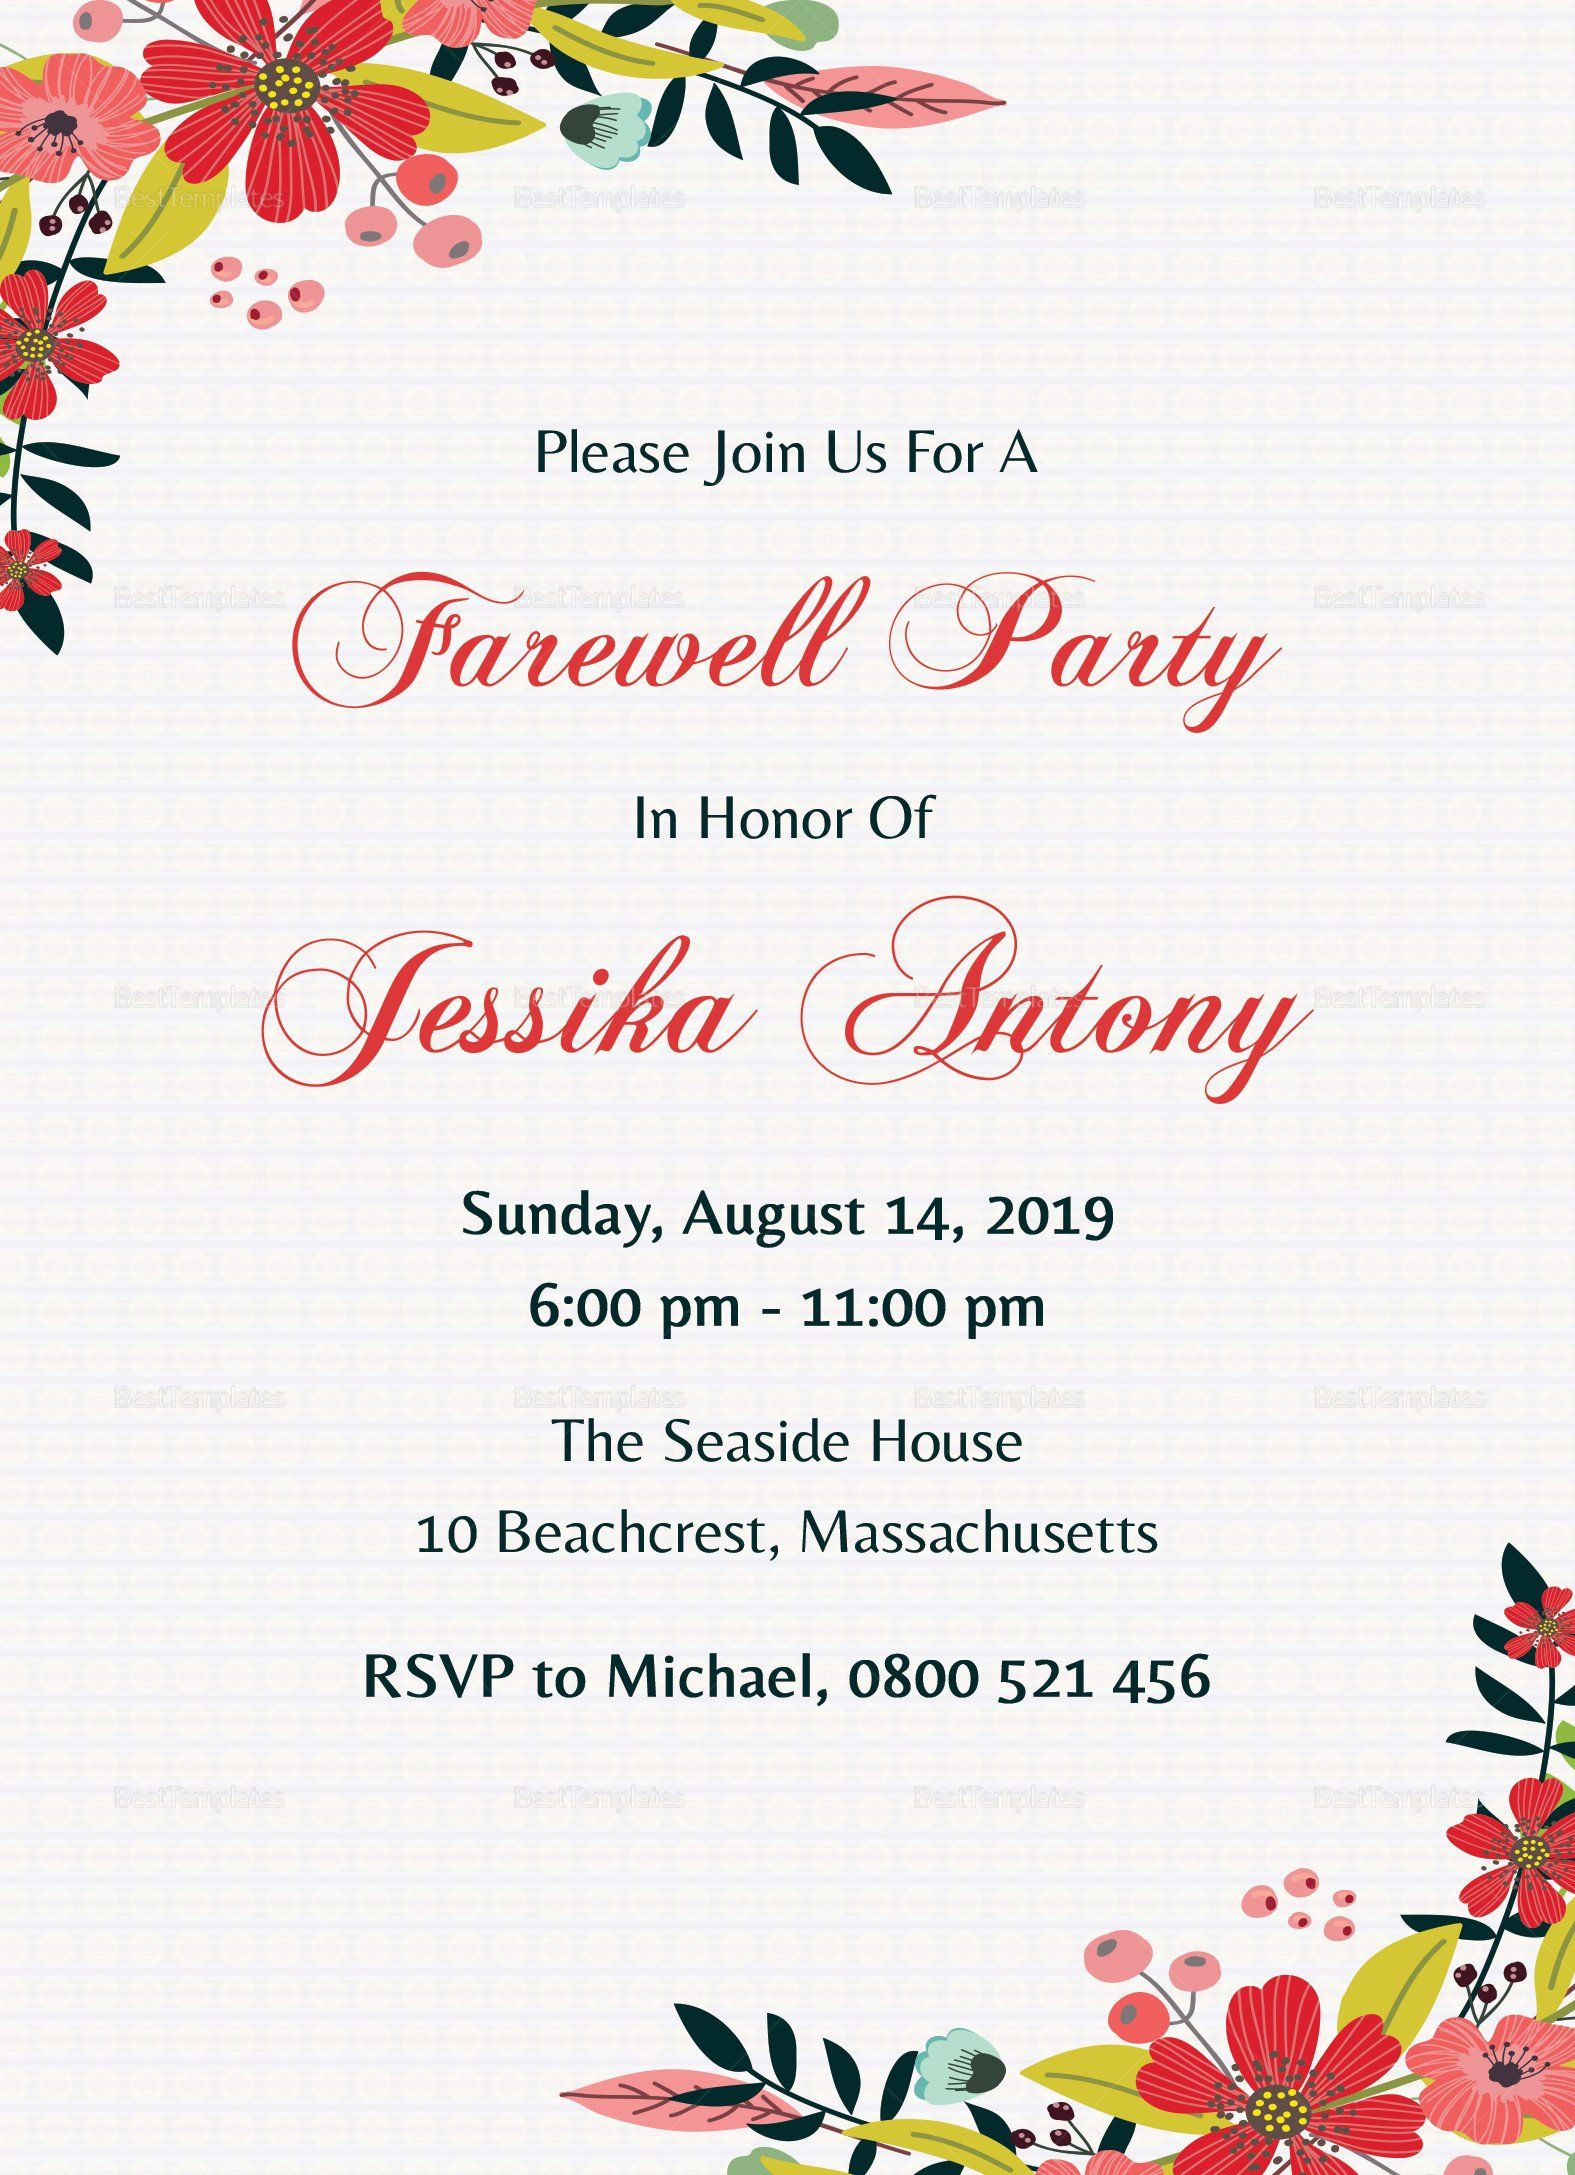 30 Farewell Party Invitation Template Free In 2020 Farewell